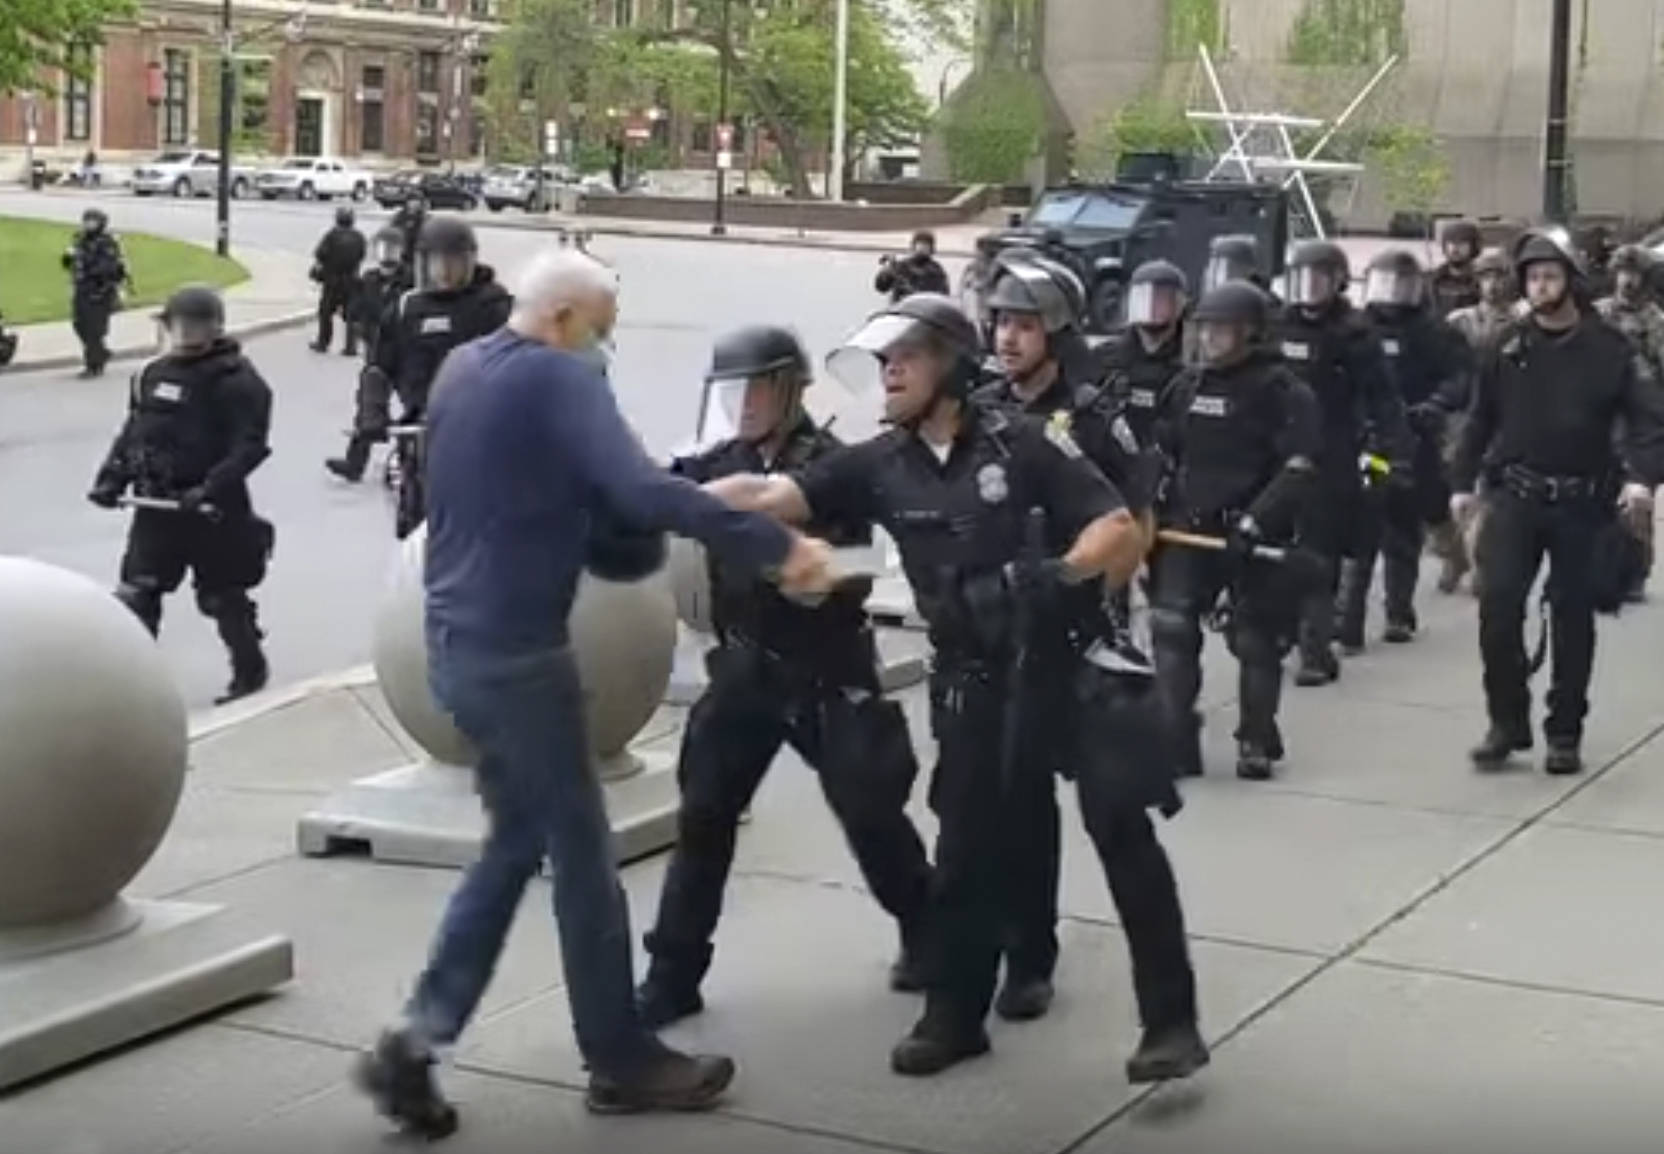 """In this image from video provided by WBFO, a Buffalo police officer appears to shove a man who walked up to police Thursday, June 4, 2020, in Buffalo, N.Y. Video from WBFO shows the man appearing to hit his head on the pavement, with blood leaking out as officers walk past to clear Niagara Square. Buffalo police initially said in a statement that a person """"was injured when he tripped & fell,"""" WIVB-TV reported, but Capt. Jeff Rinaldo later told the TV station that an internal affairs investigation was opened. Police Commissioner Byron Lockwood suspended two officers late Thursday, the mayor's statement said. (Mike Desmond 